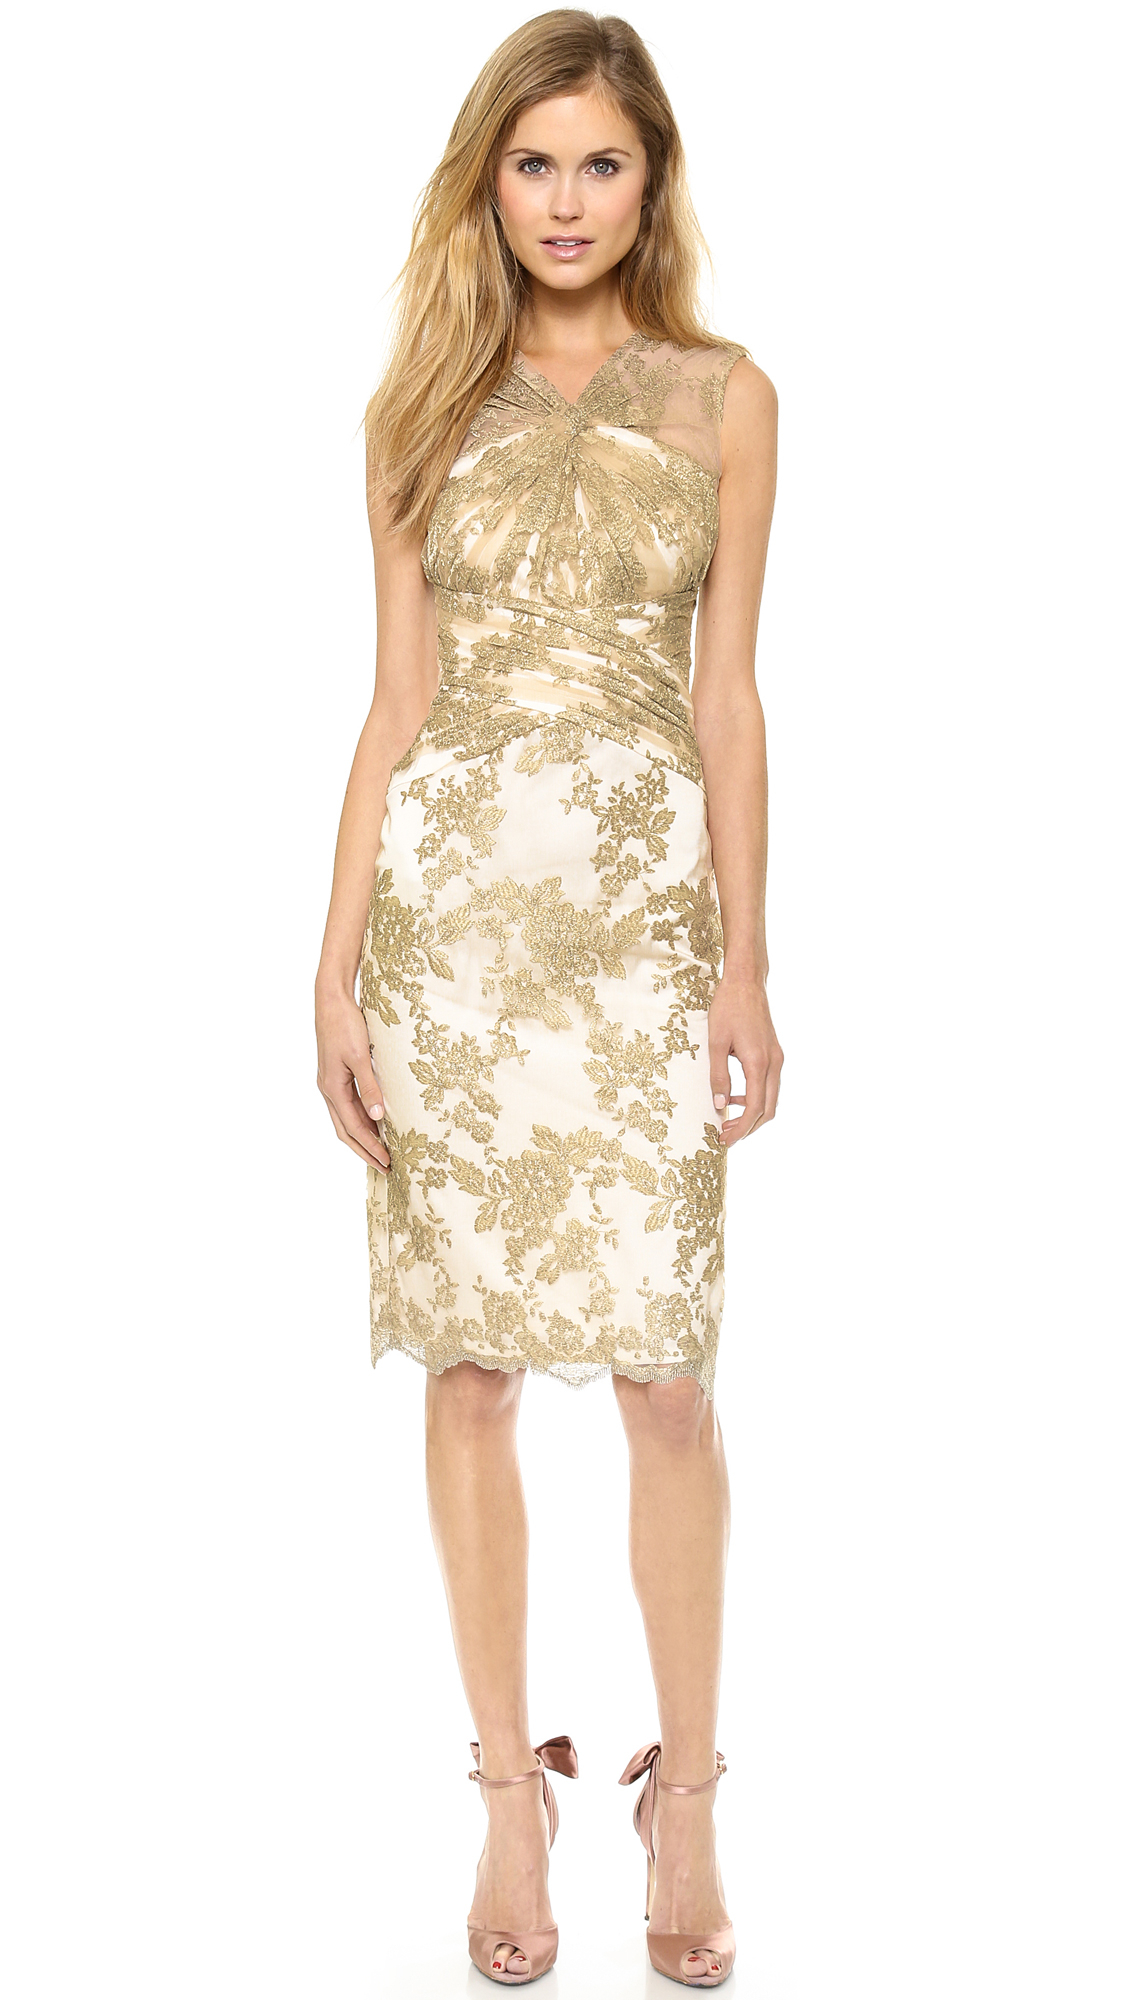 Dillard&-39-S Gold Cocktail Dress - Holiday Dresses